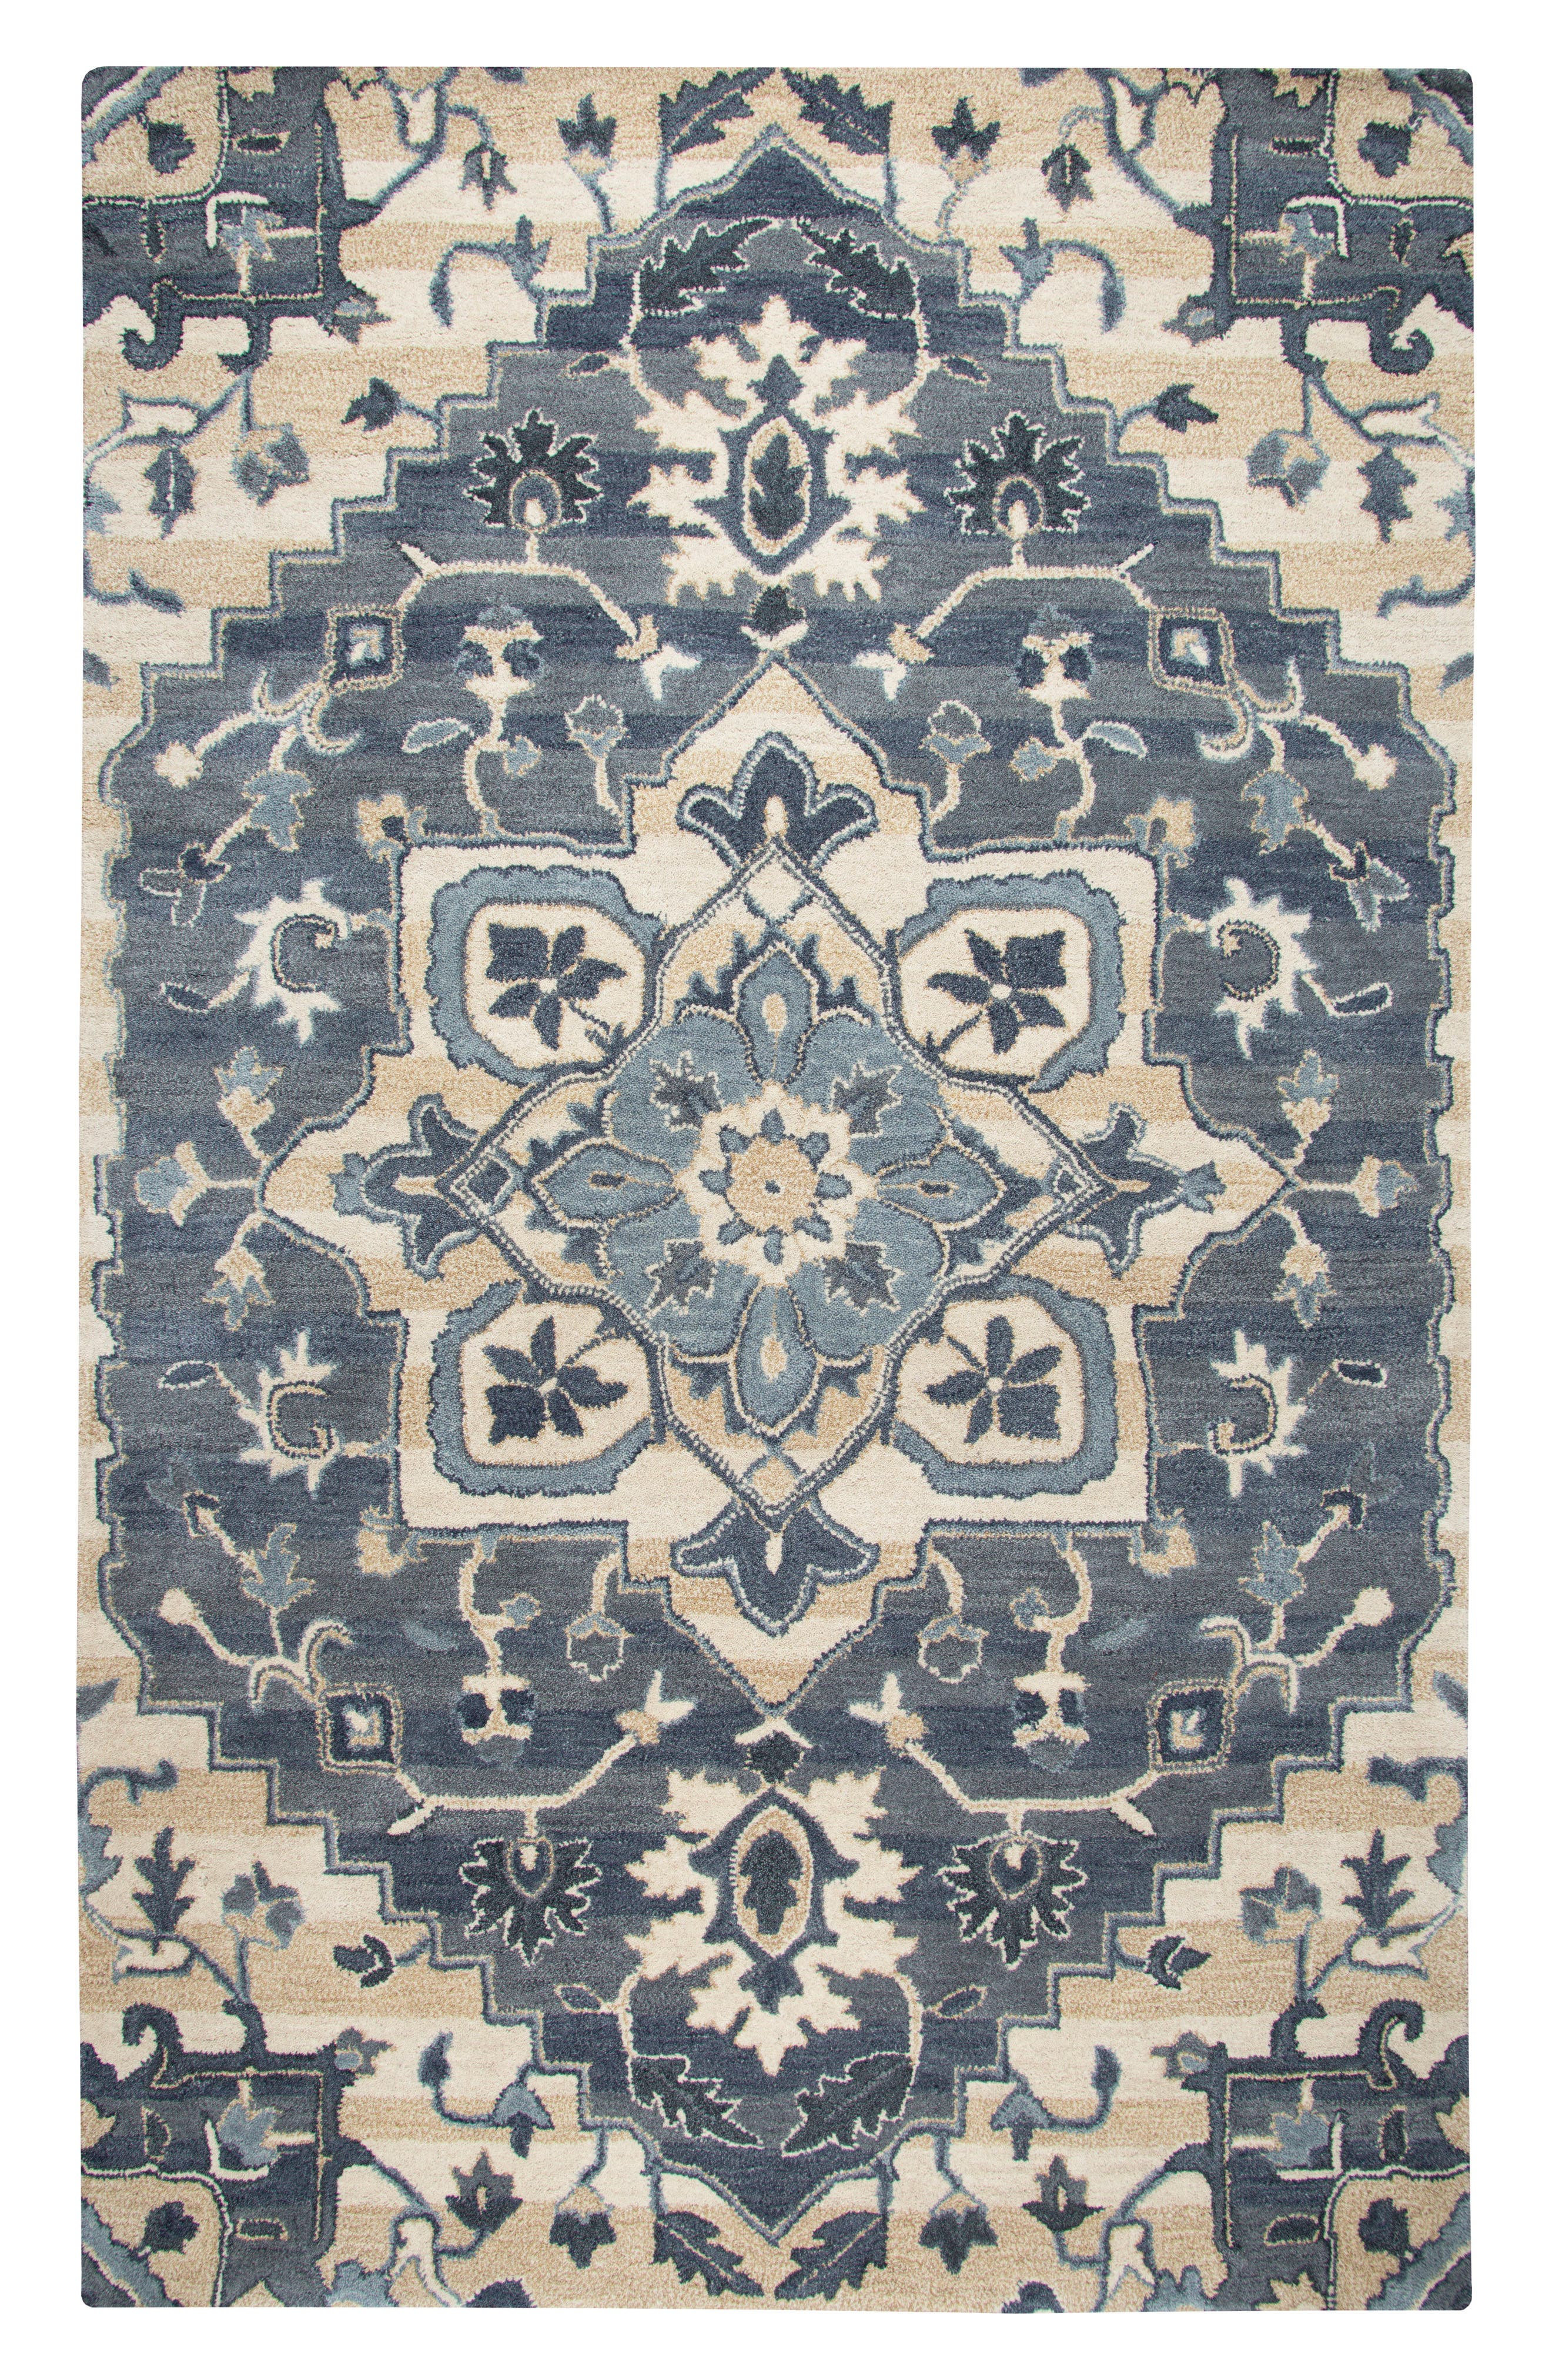 Veronica Hand Tufted Wool Rug,                             Main thumbnail 1, color,                             Blue